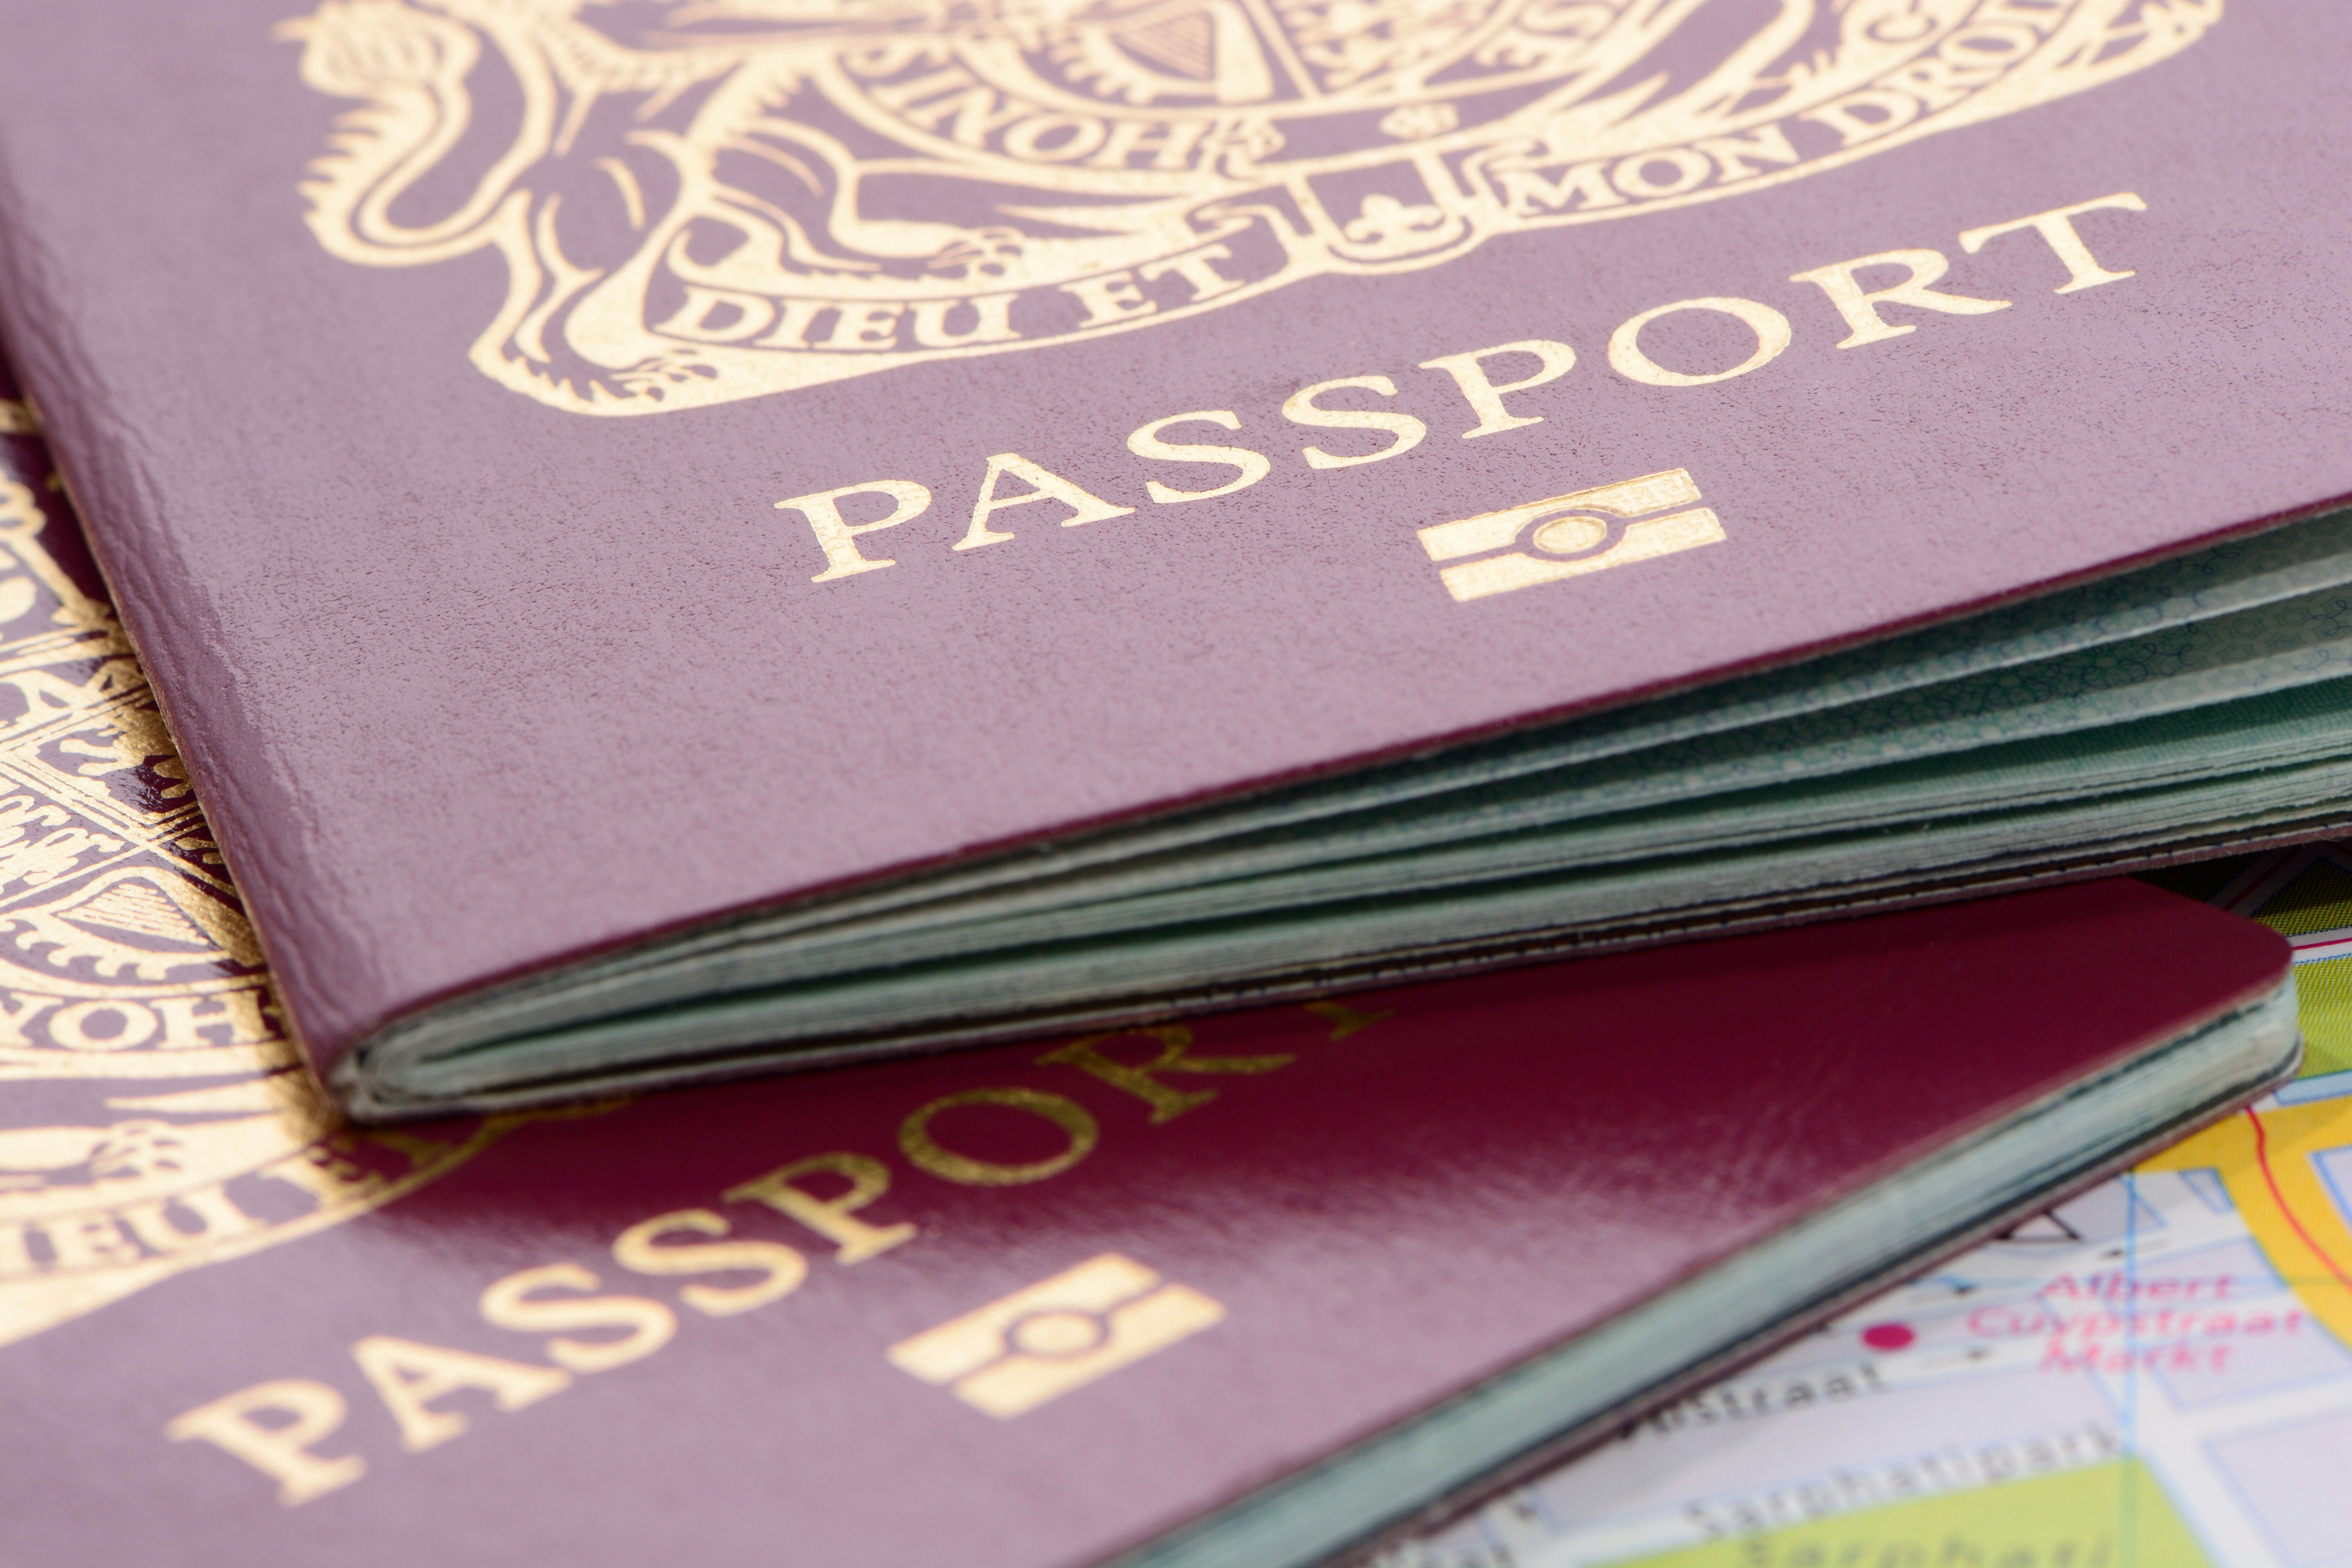 Apparently burgundy passports are a 'source of national